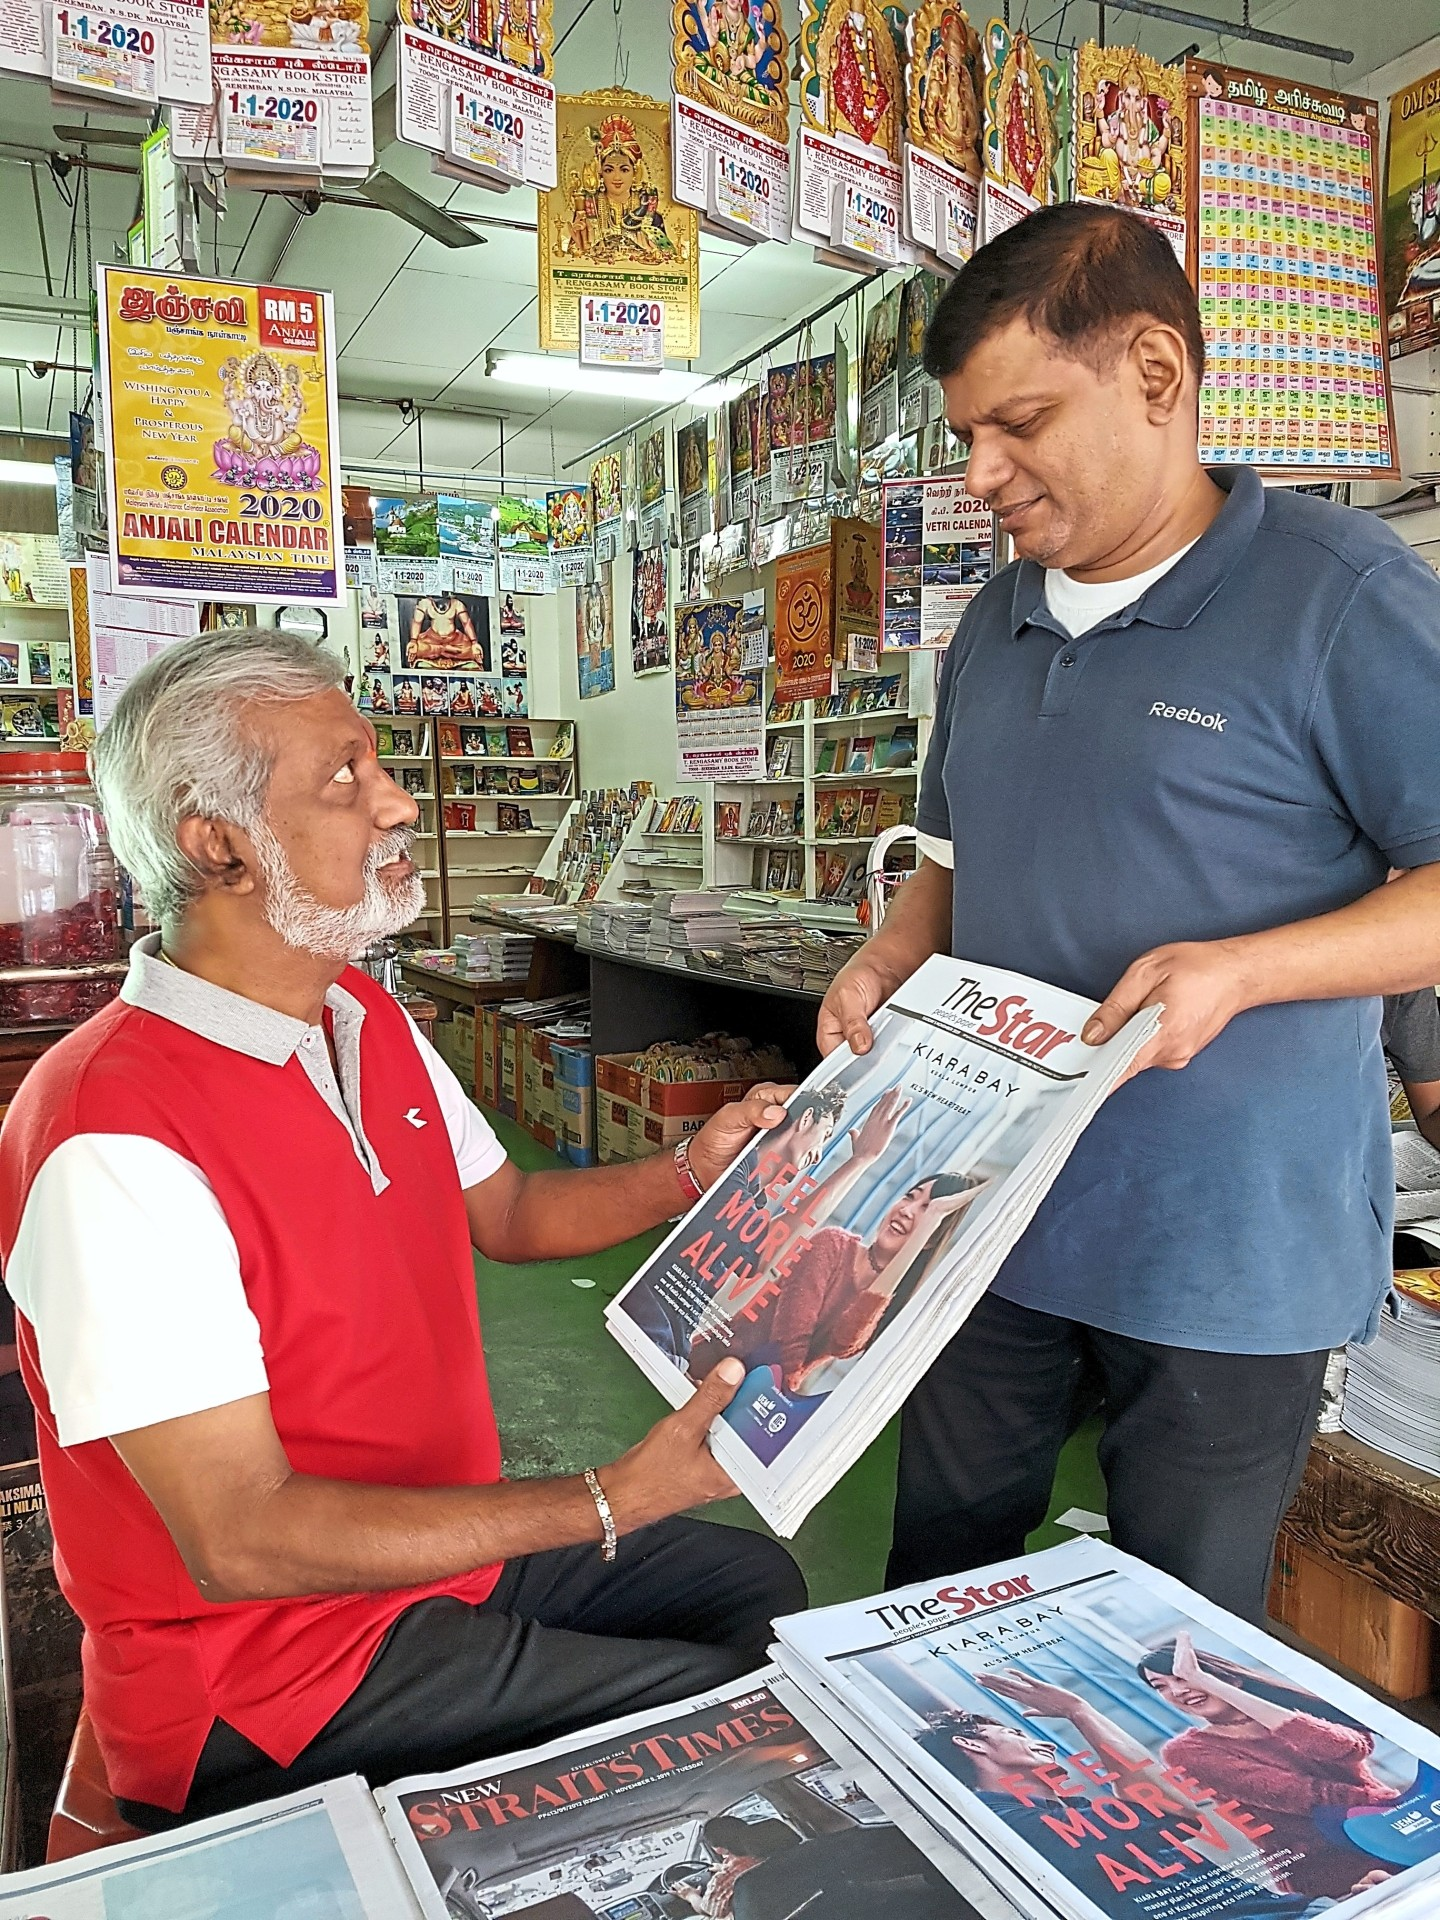 Ganesh and Chandran are proud to continue their late father's 75-year-old business.